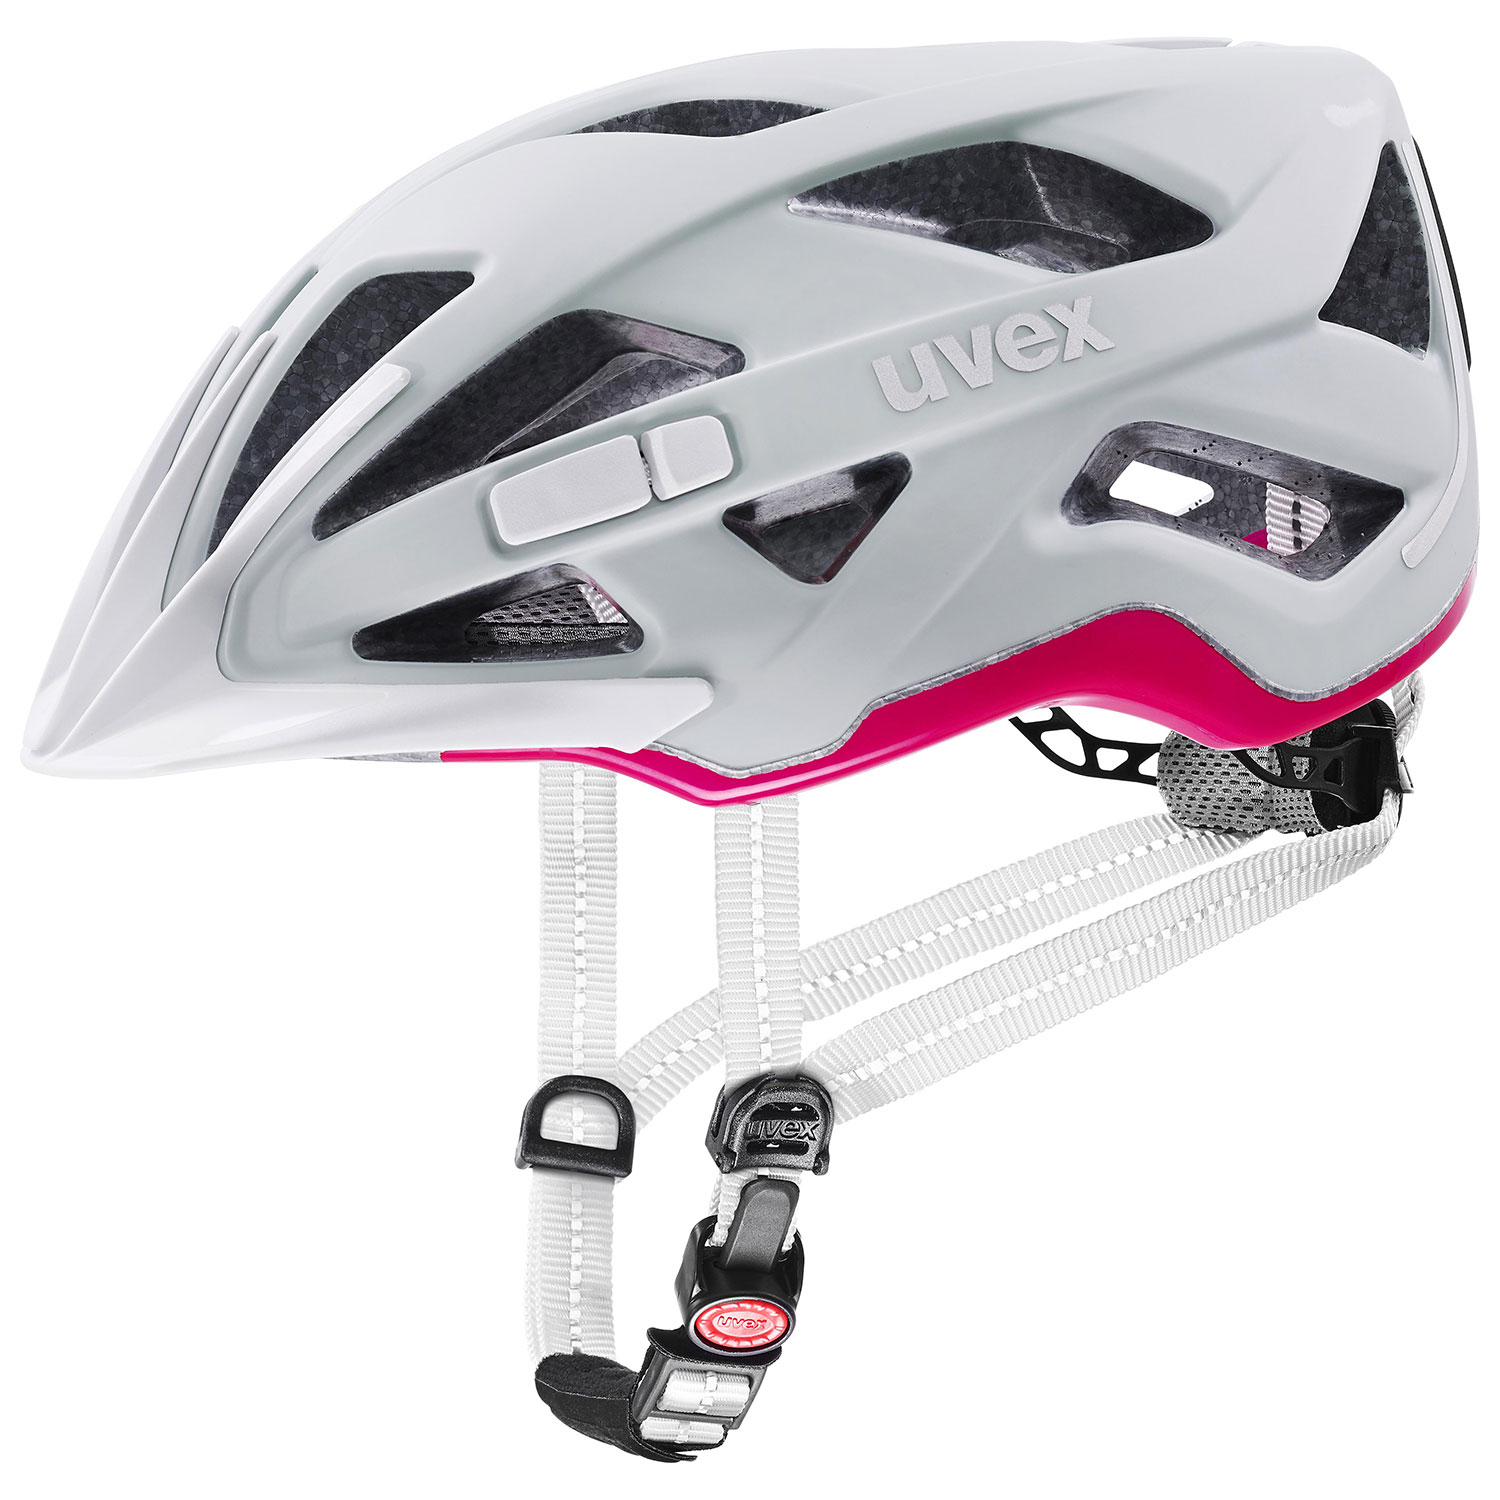 2021 UVEX HELMA CITY ACTIVE, PAPYRUS - NEON PINK MAT 52-57